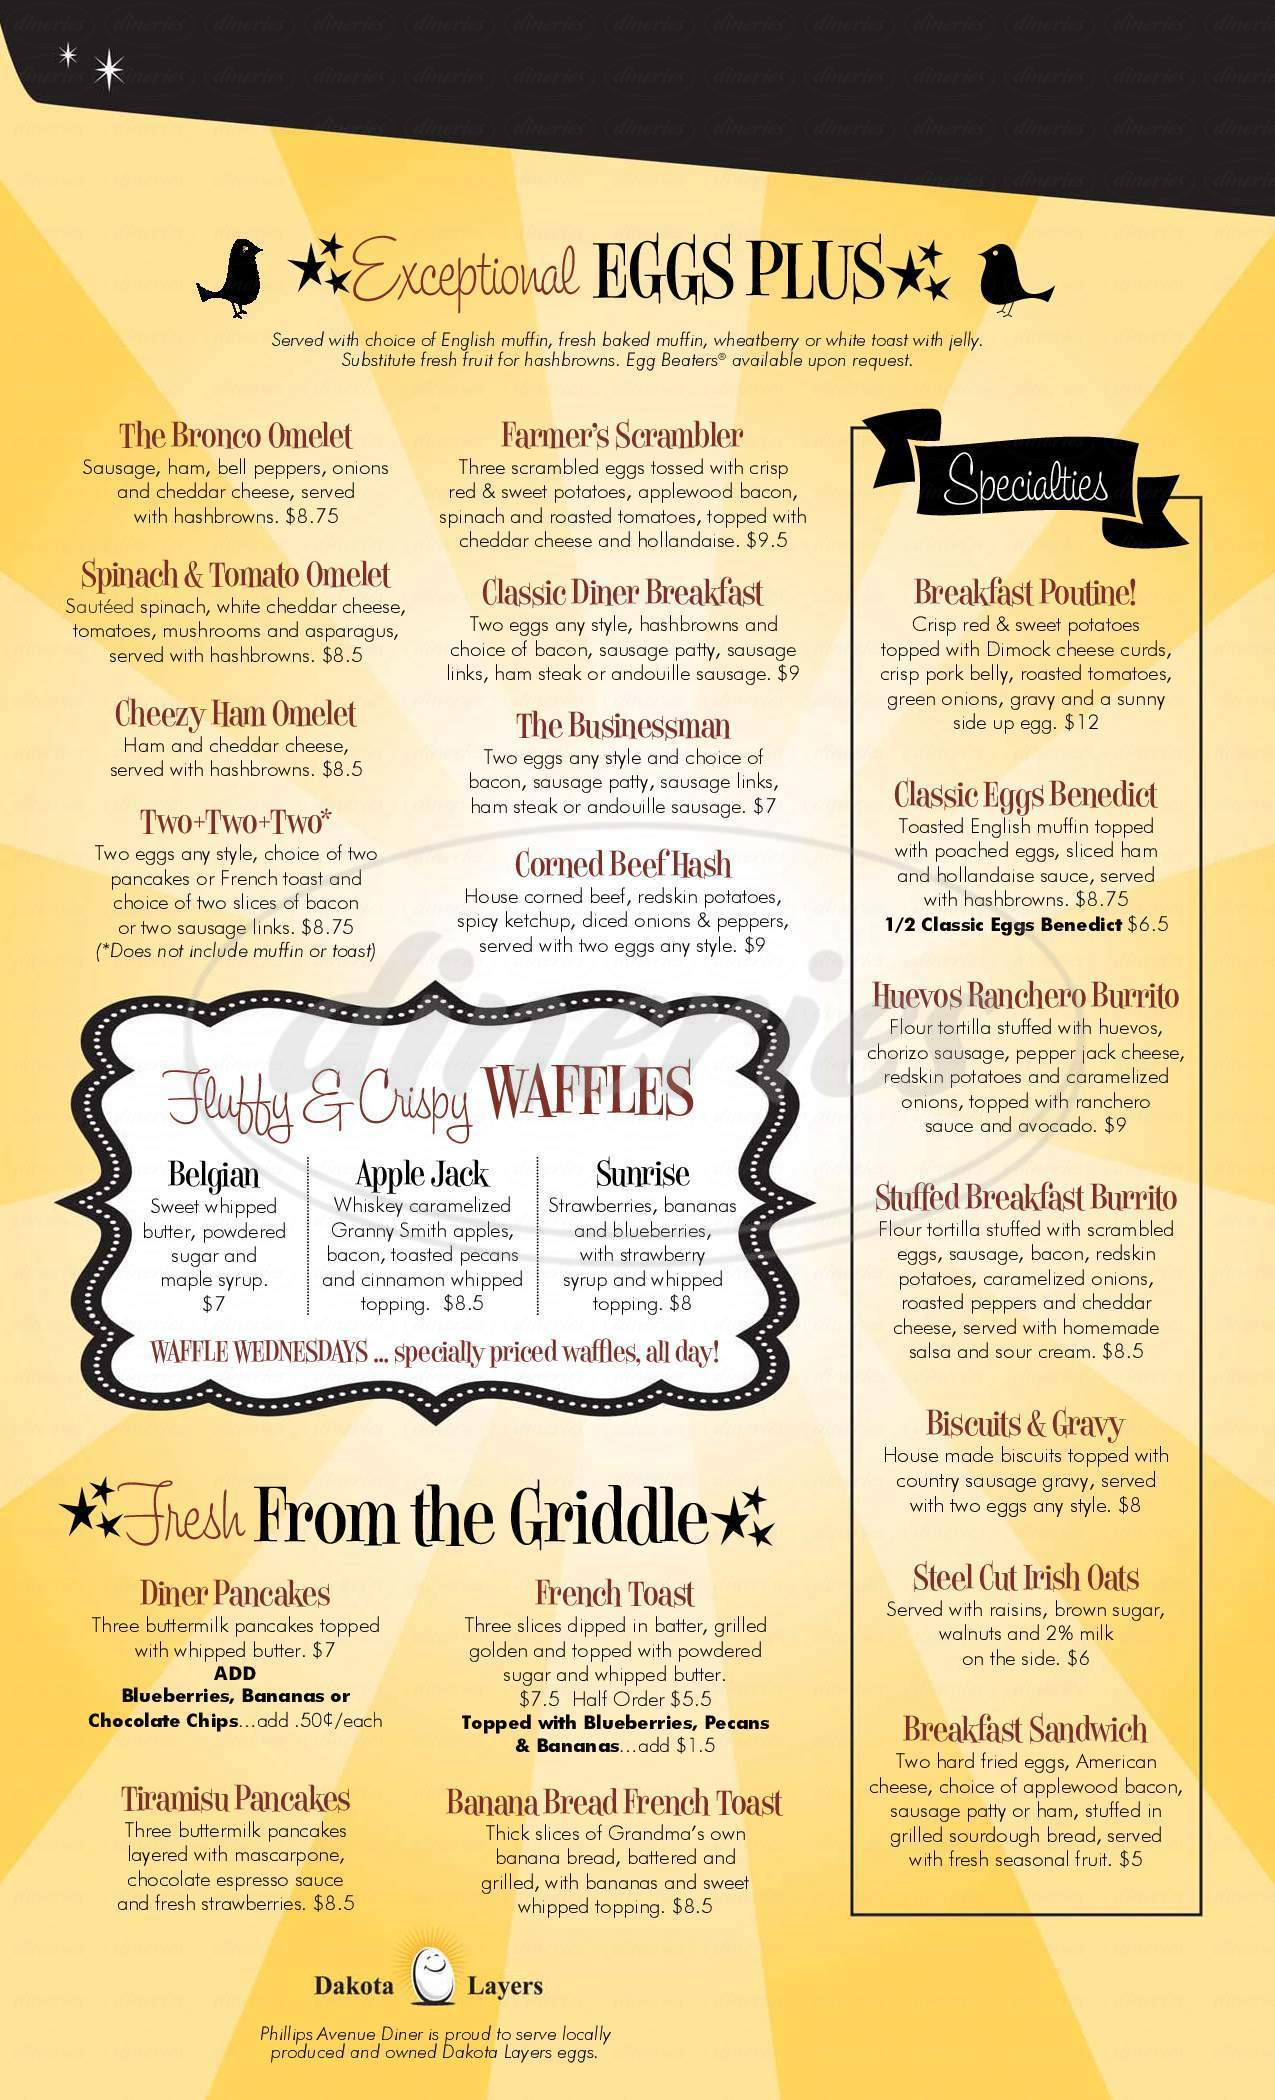 menu for Phillips Avenue Diner